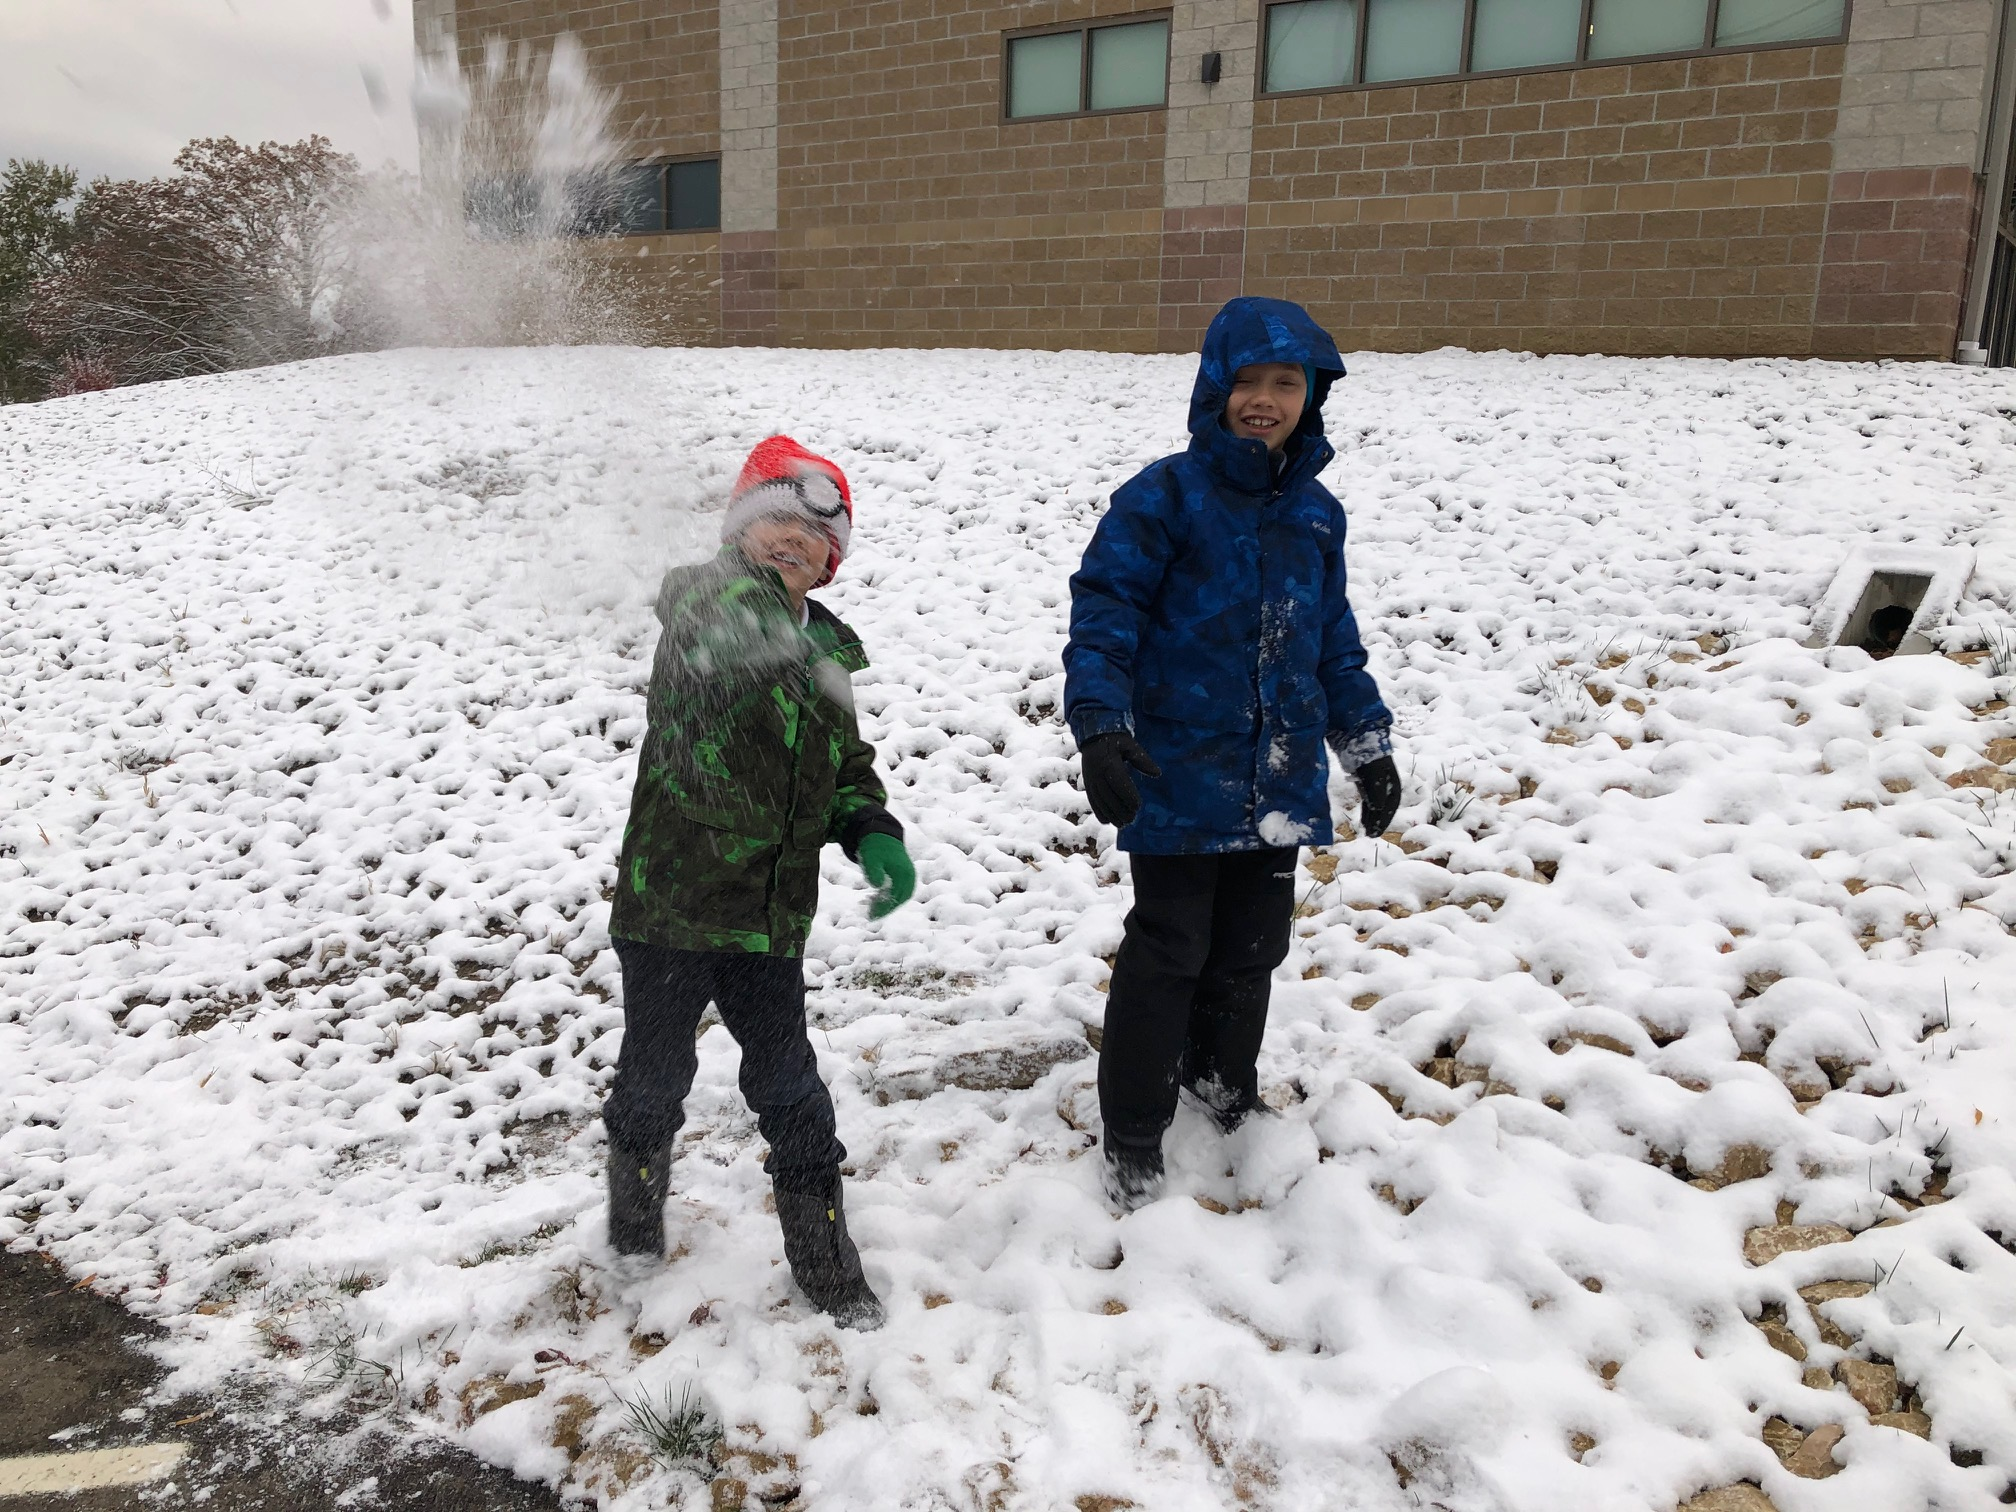 Two young boys throw snowballs and play in the snow.